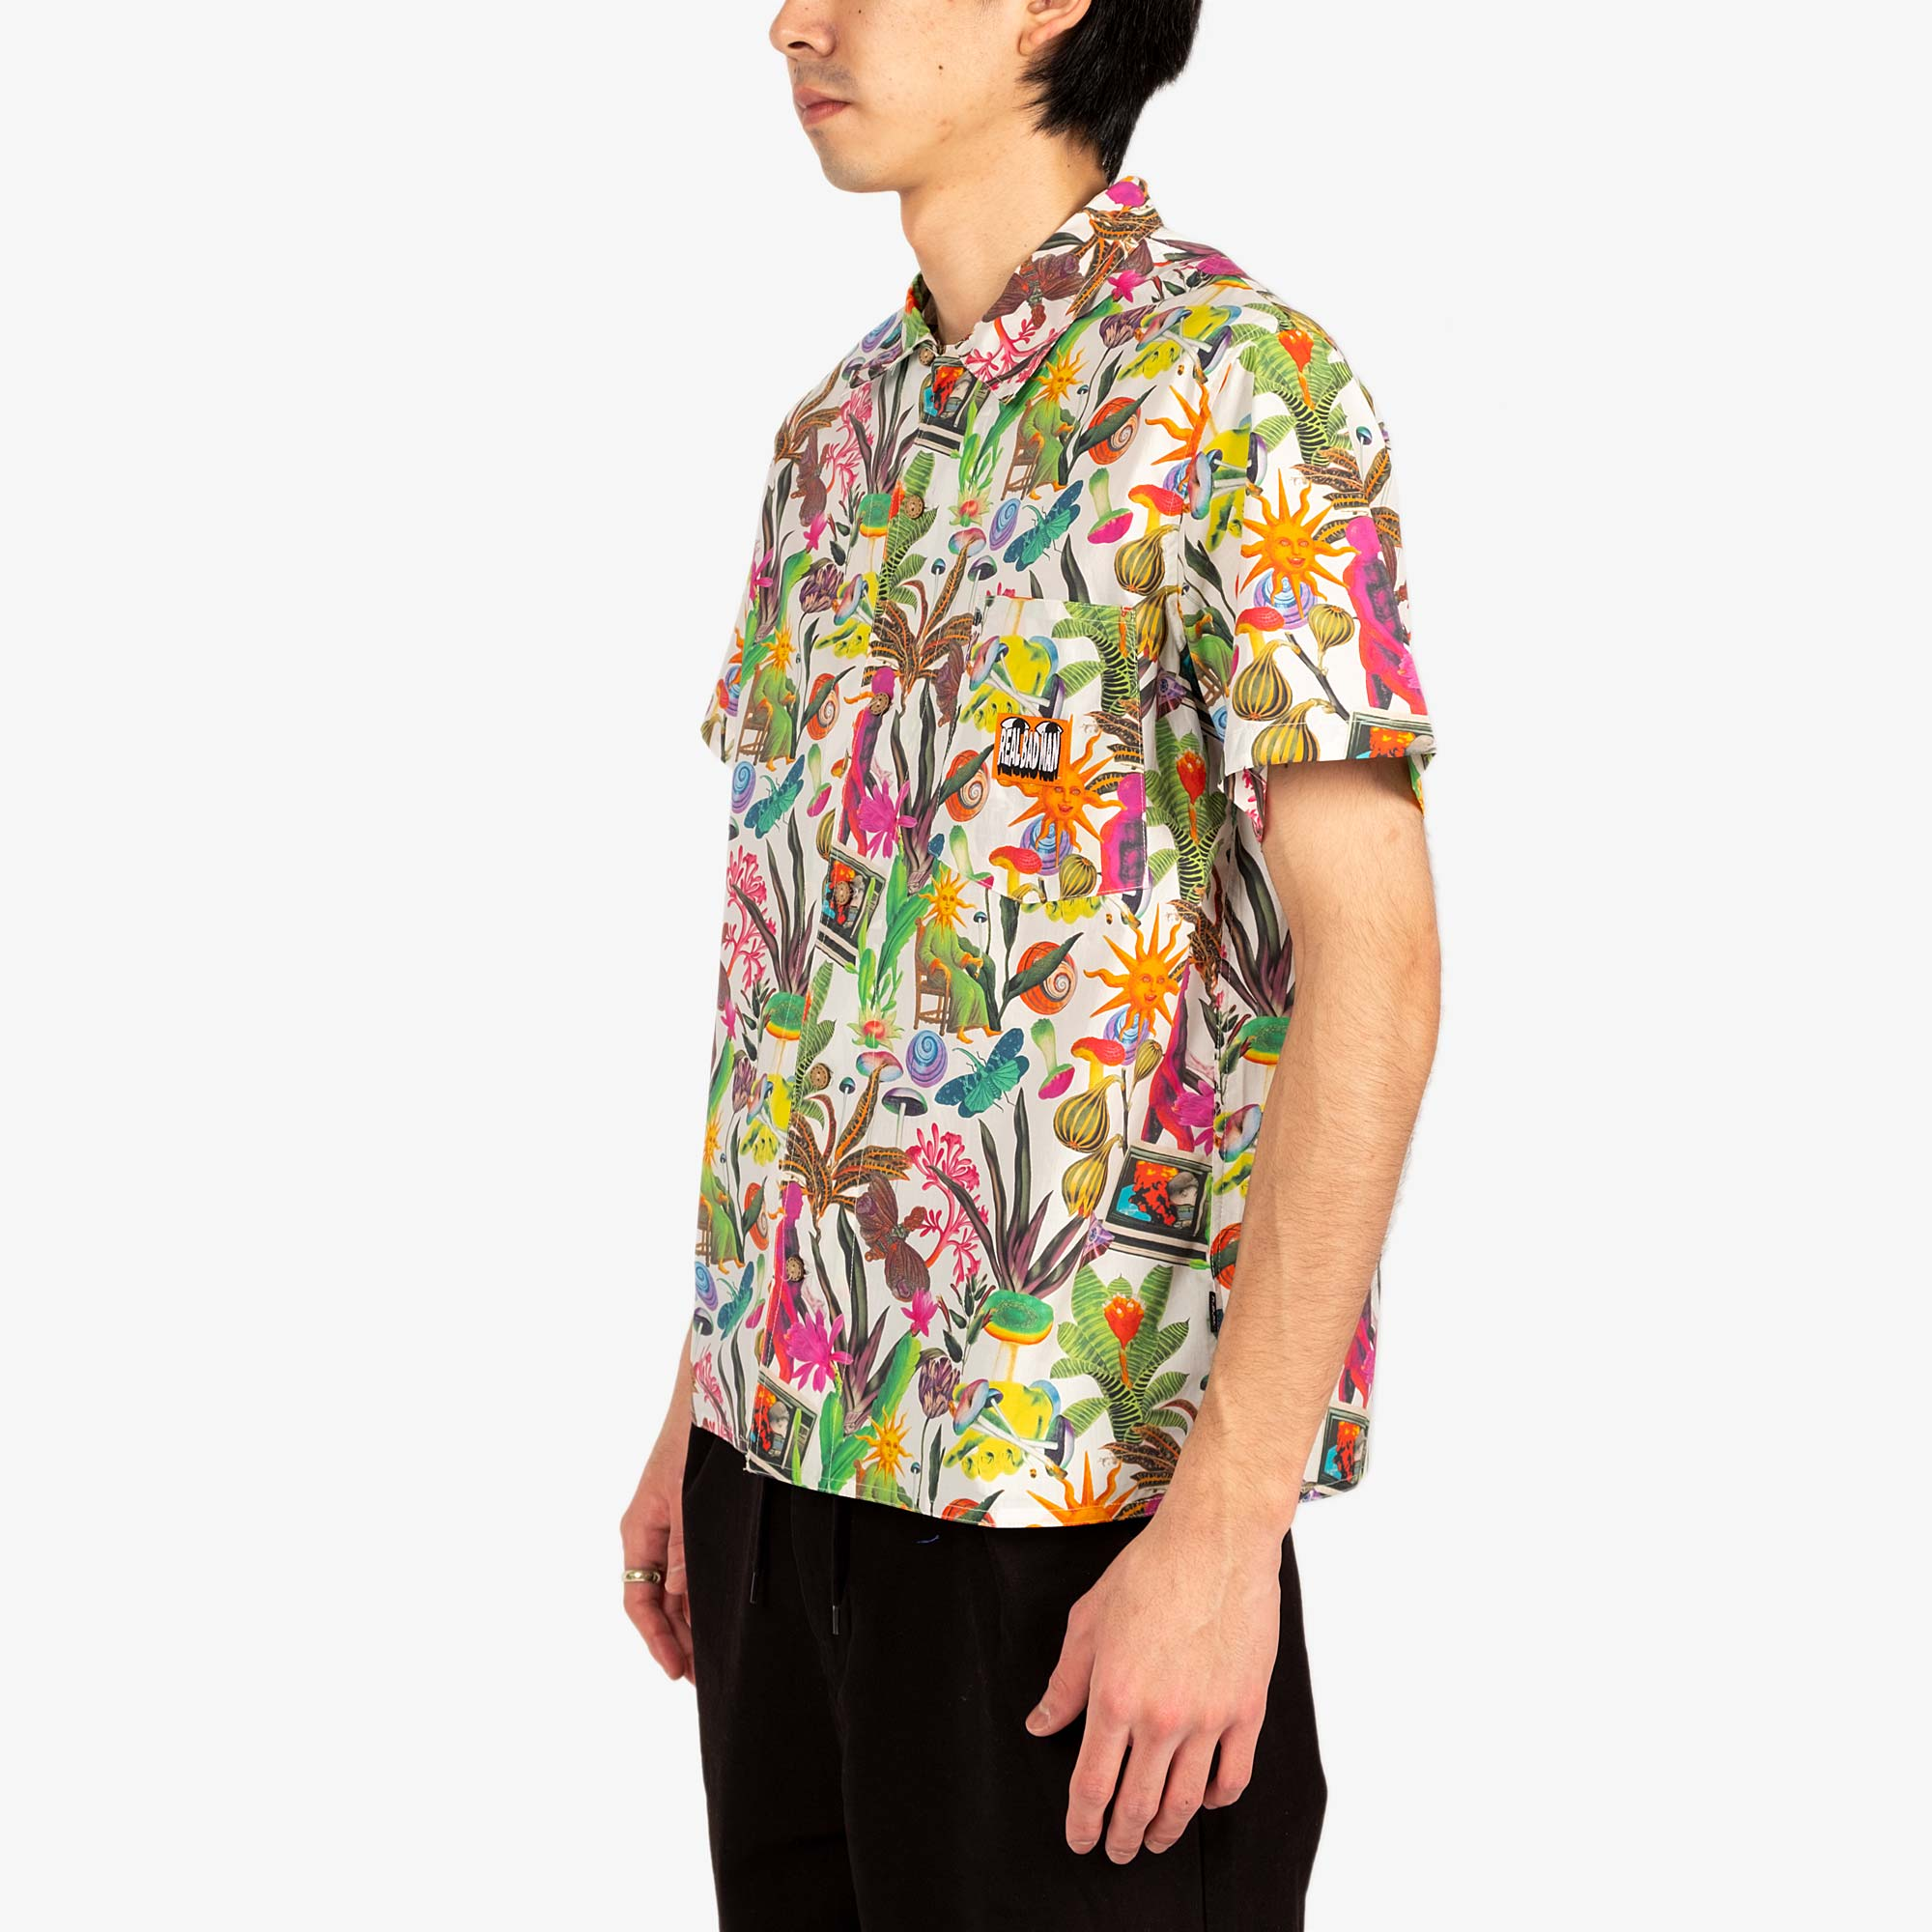 Real Bad Man Psychedelica Vacation Button Down - Black Multi Print 5